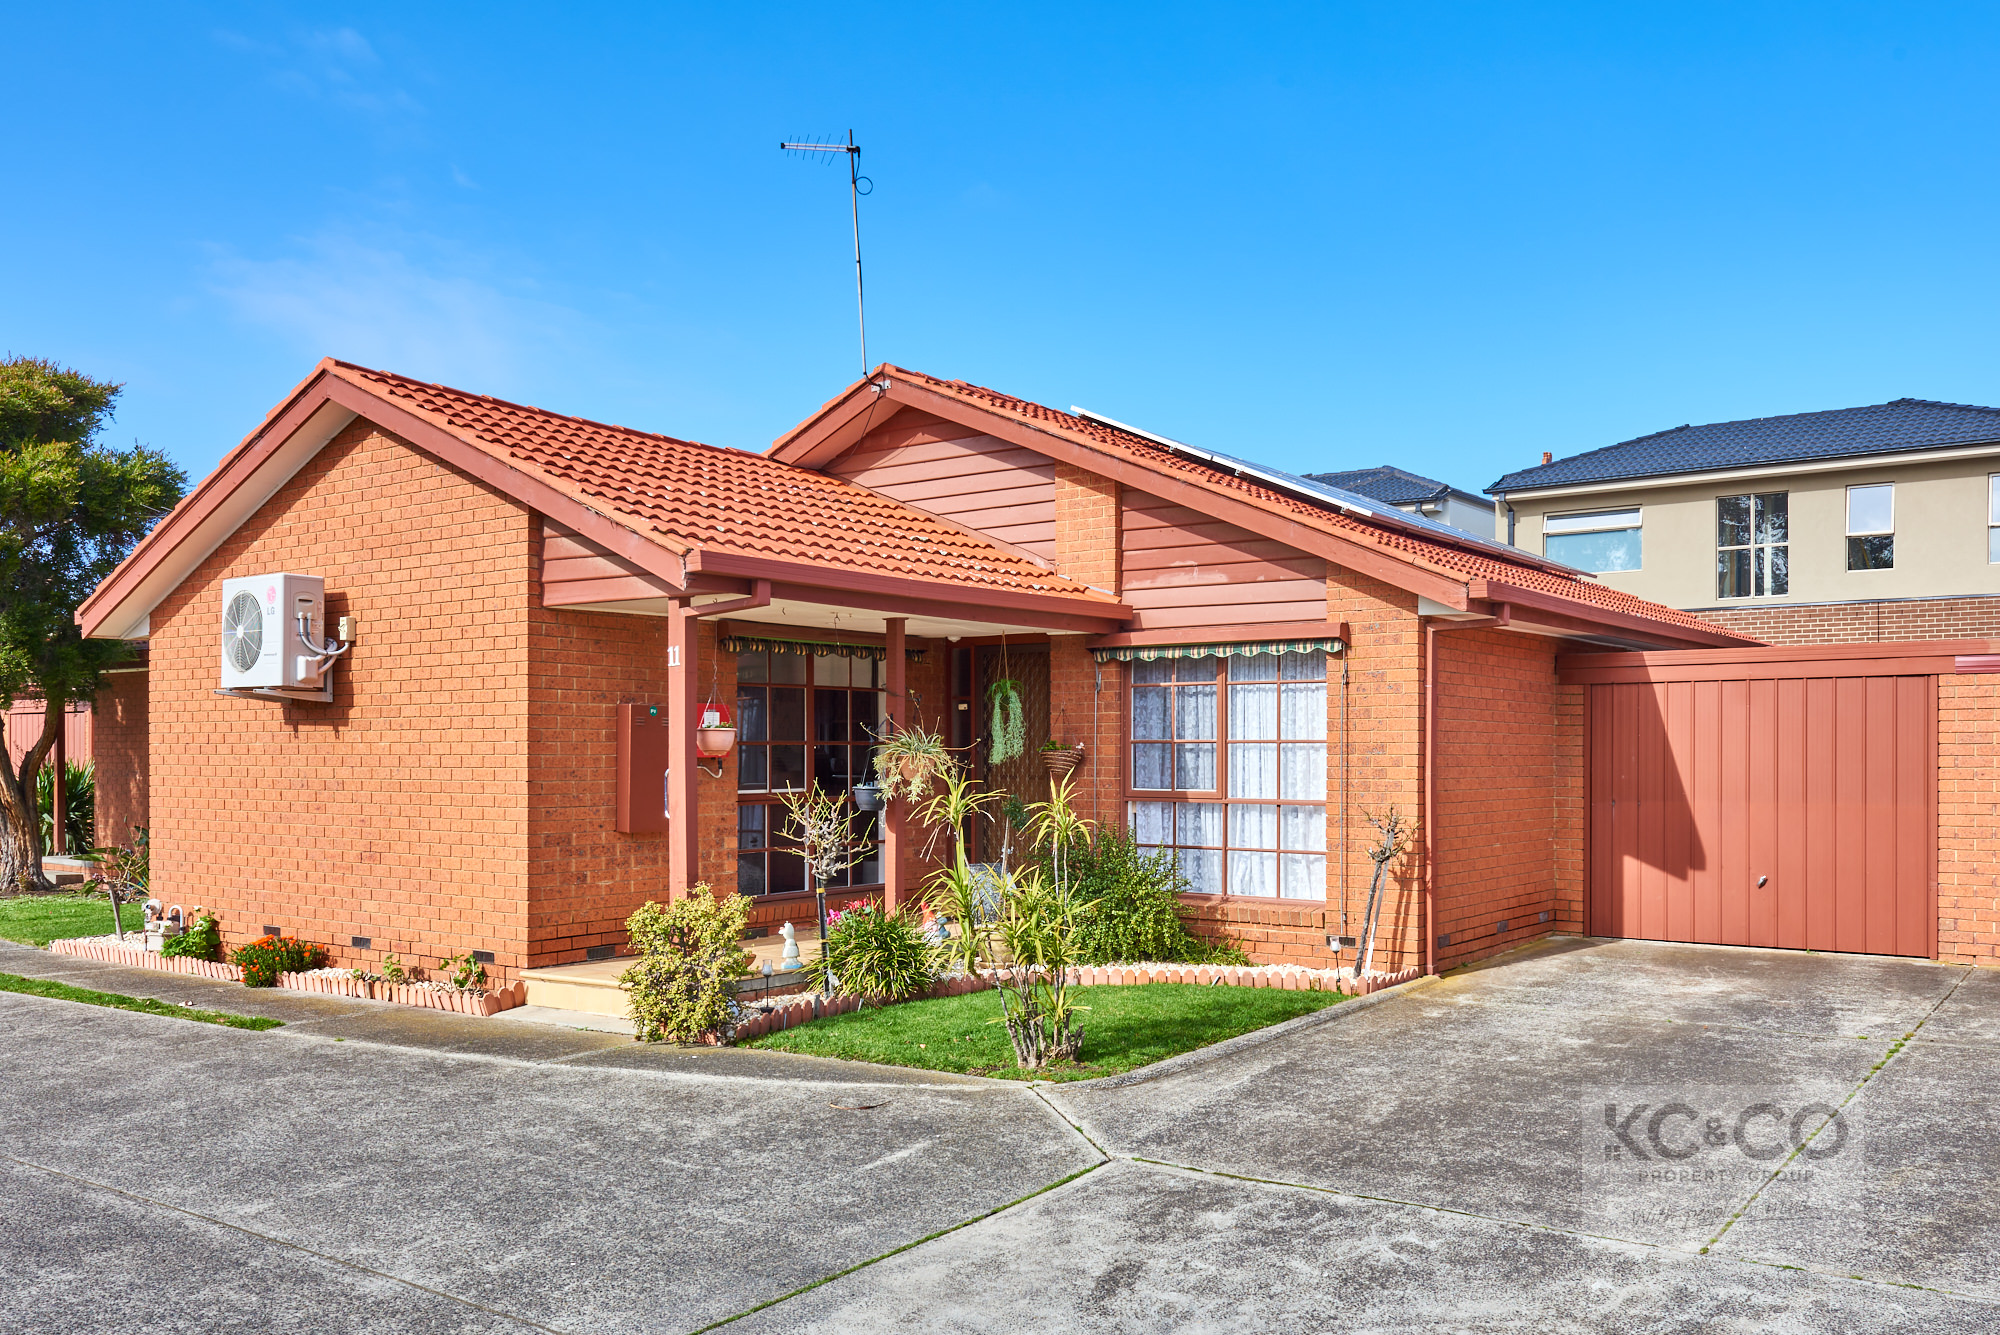 11/524 Springvale Road, Springvale South VIC 3172 | Domain